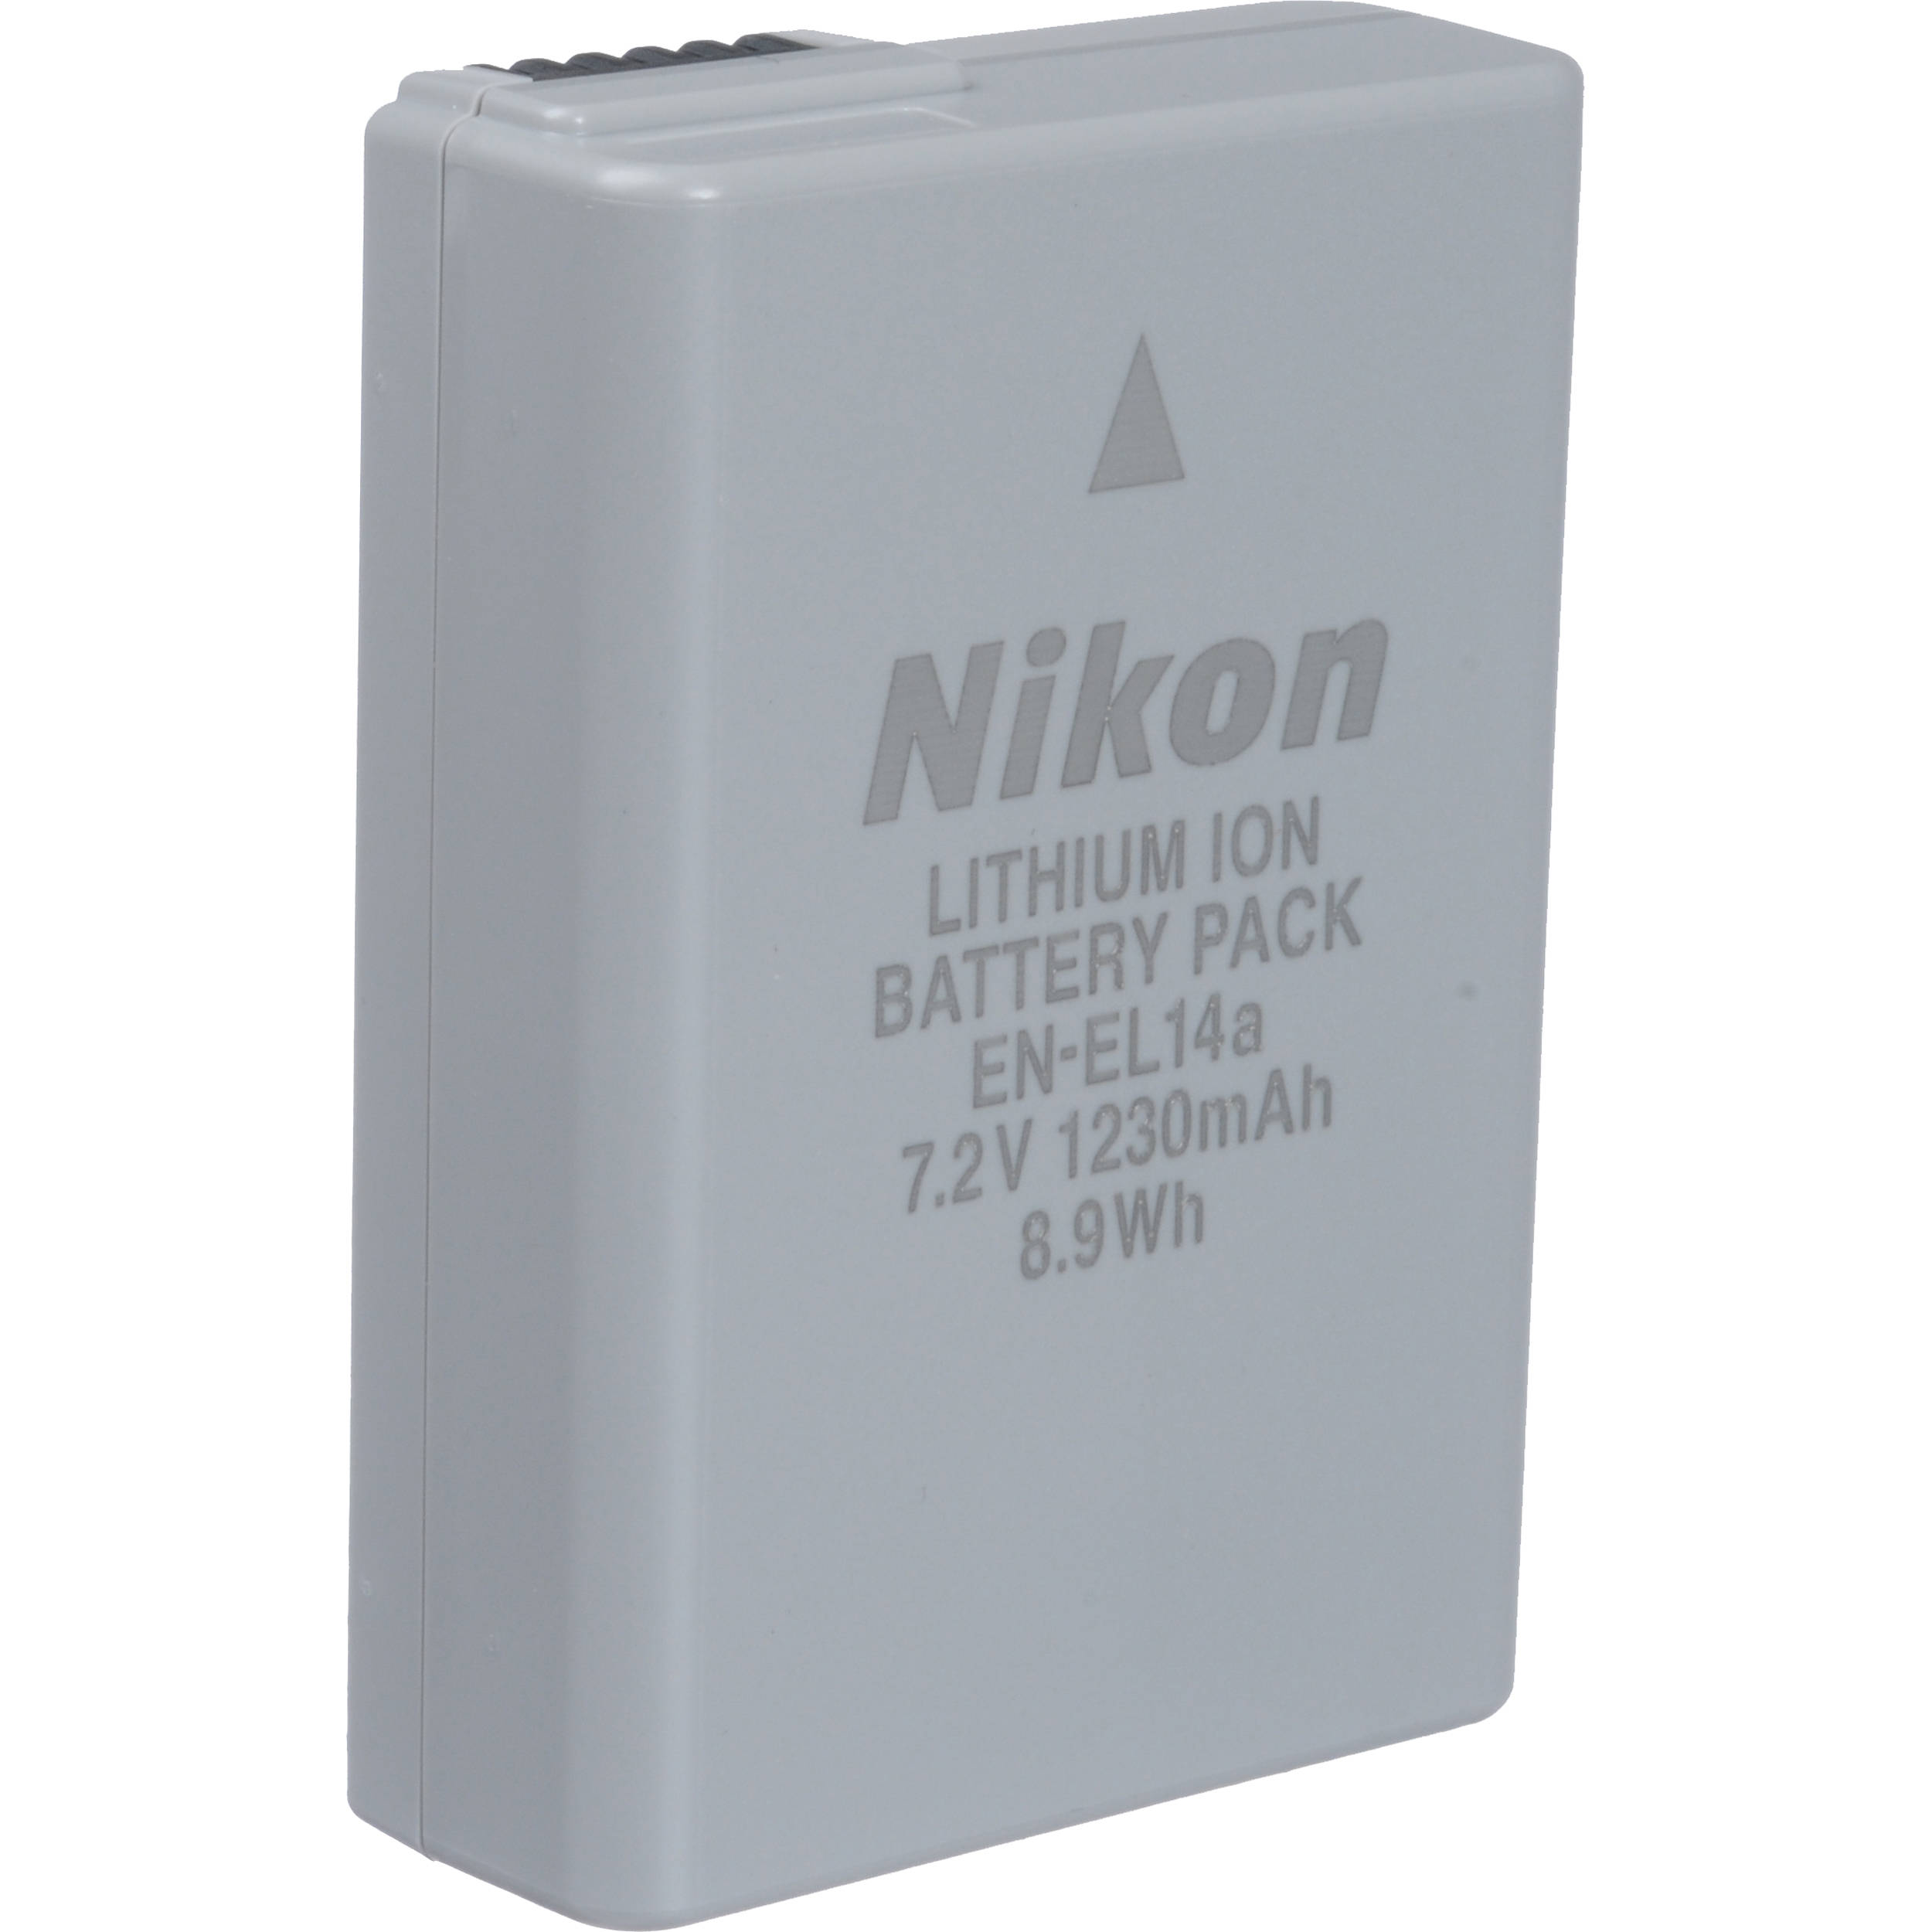 Nikon En El14a Rechargeable Li Ion Battery For Select 27126 Bh D3100 Power Connector Cover From Cameras